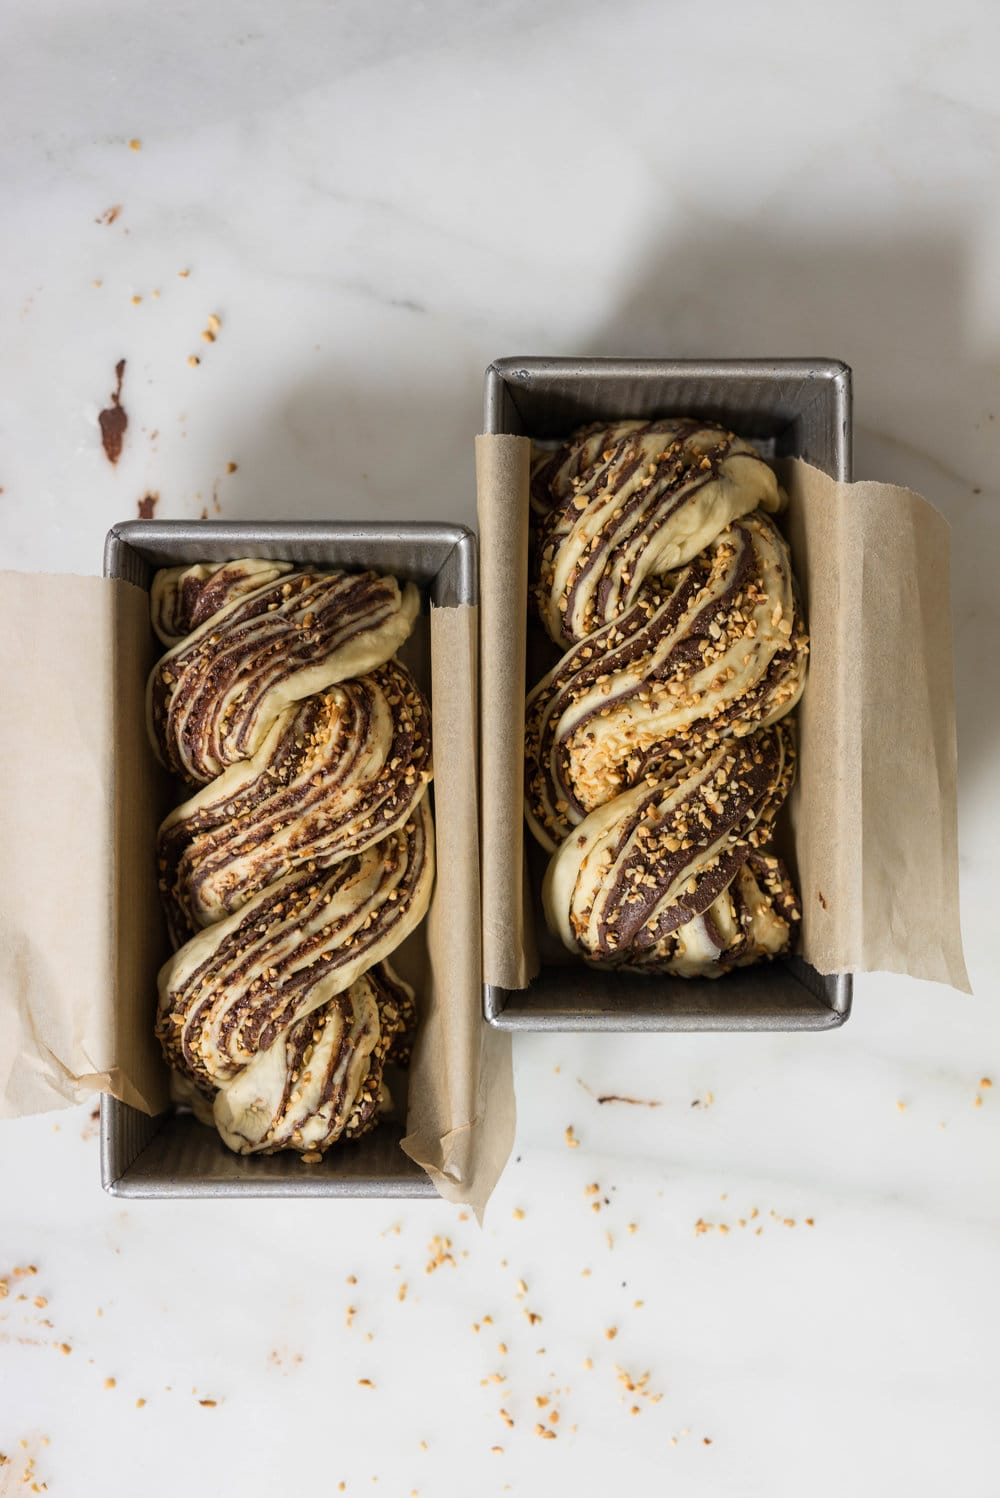 Chocolate Hazelnut Babka - fluffy brioche dough is rolled out and spread with a homemade hazelnut chocolate spread, sprinkled with chopped toasted walnuts, and rolled into swirly chocolatey loaves. The result is perfect for a coffee break, or an indulgent wee breakfast.